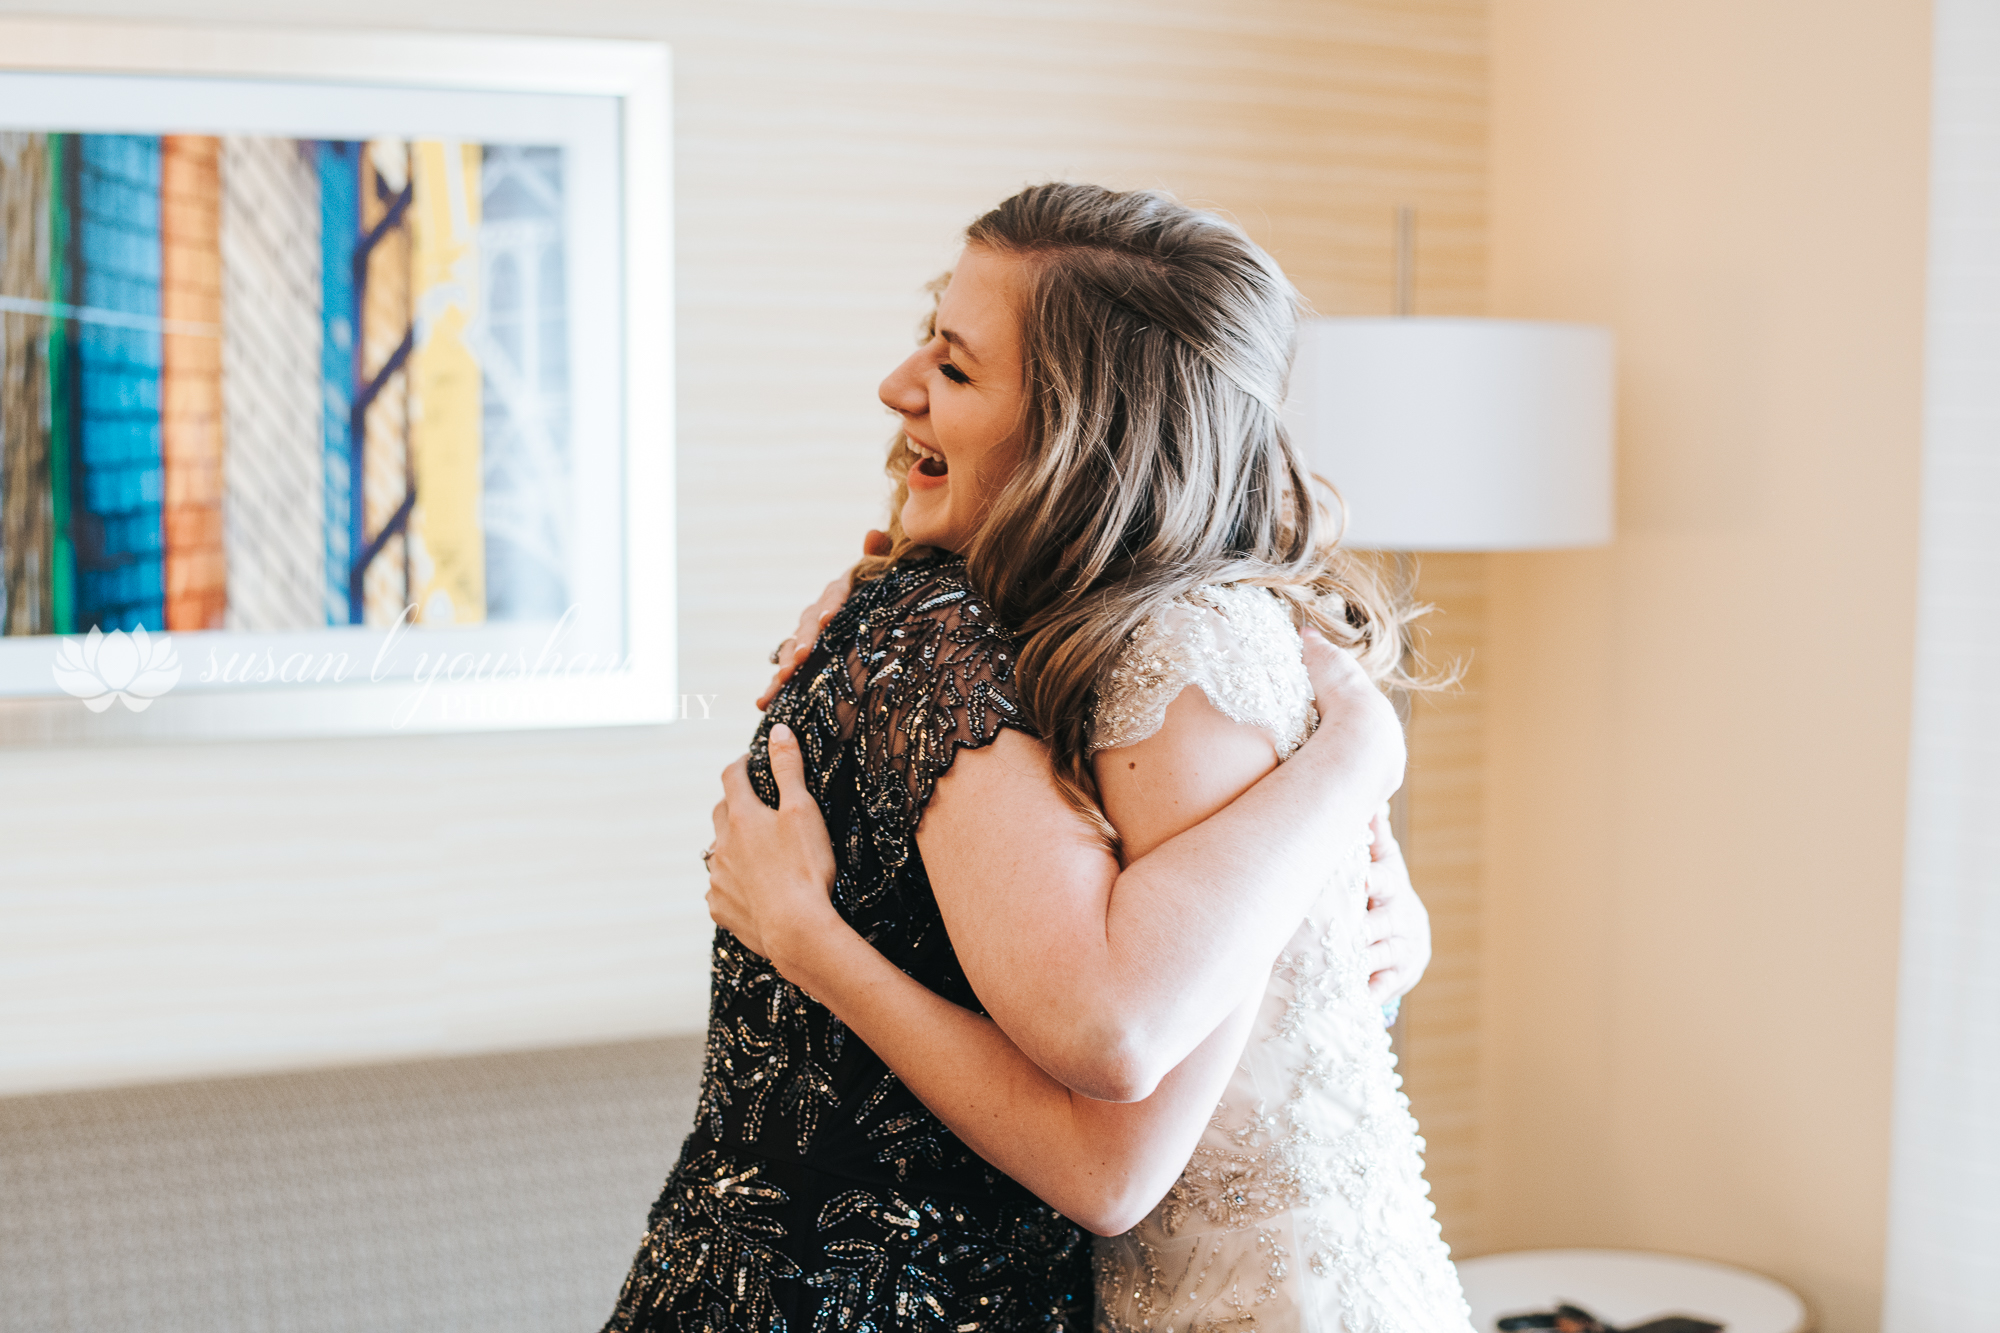 Chynna and John Wedding 05-18-2019 SLY Photography-25.jpg